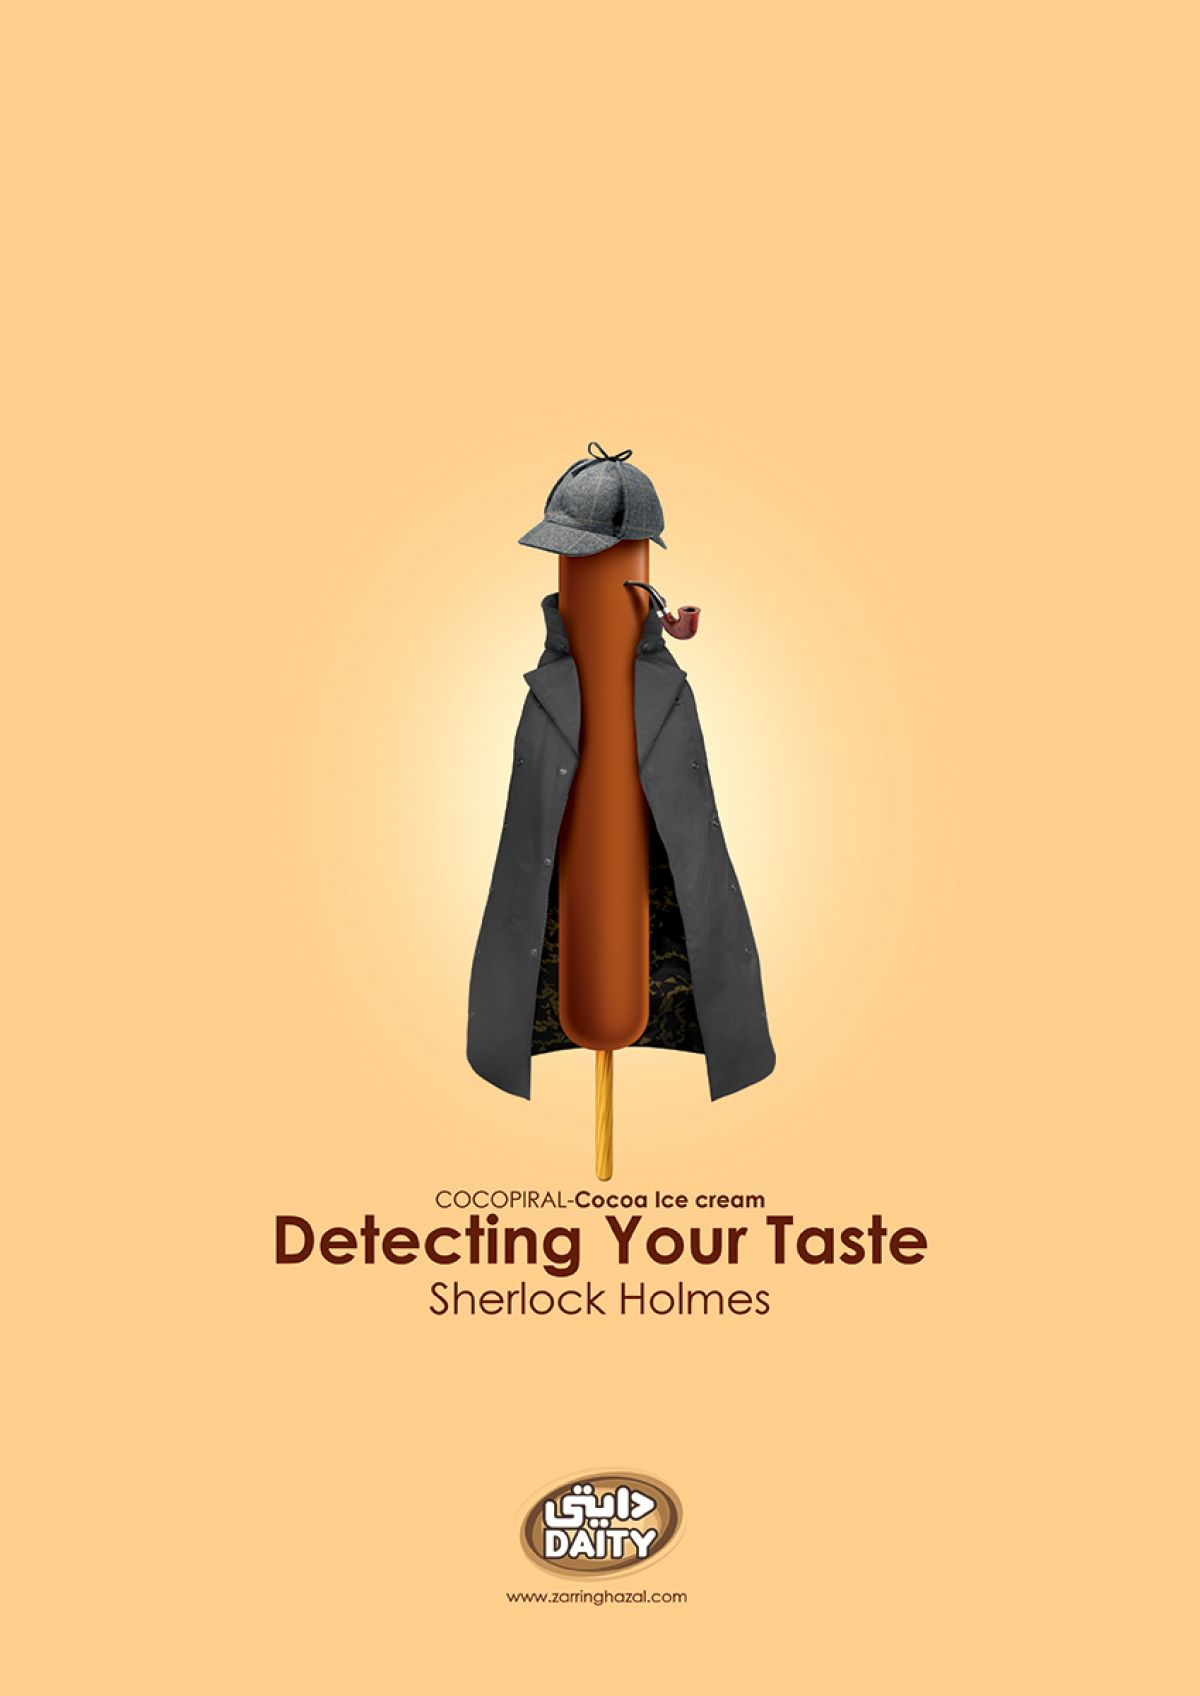 DAITY ice cream - Detecting Your Taste - Sherlock Holmes